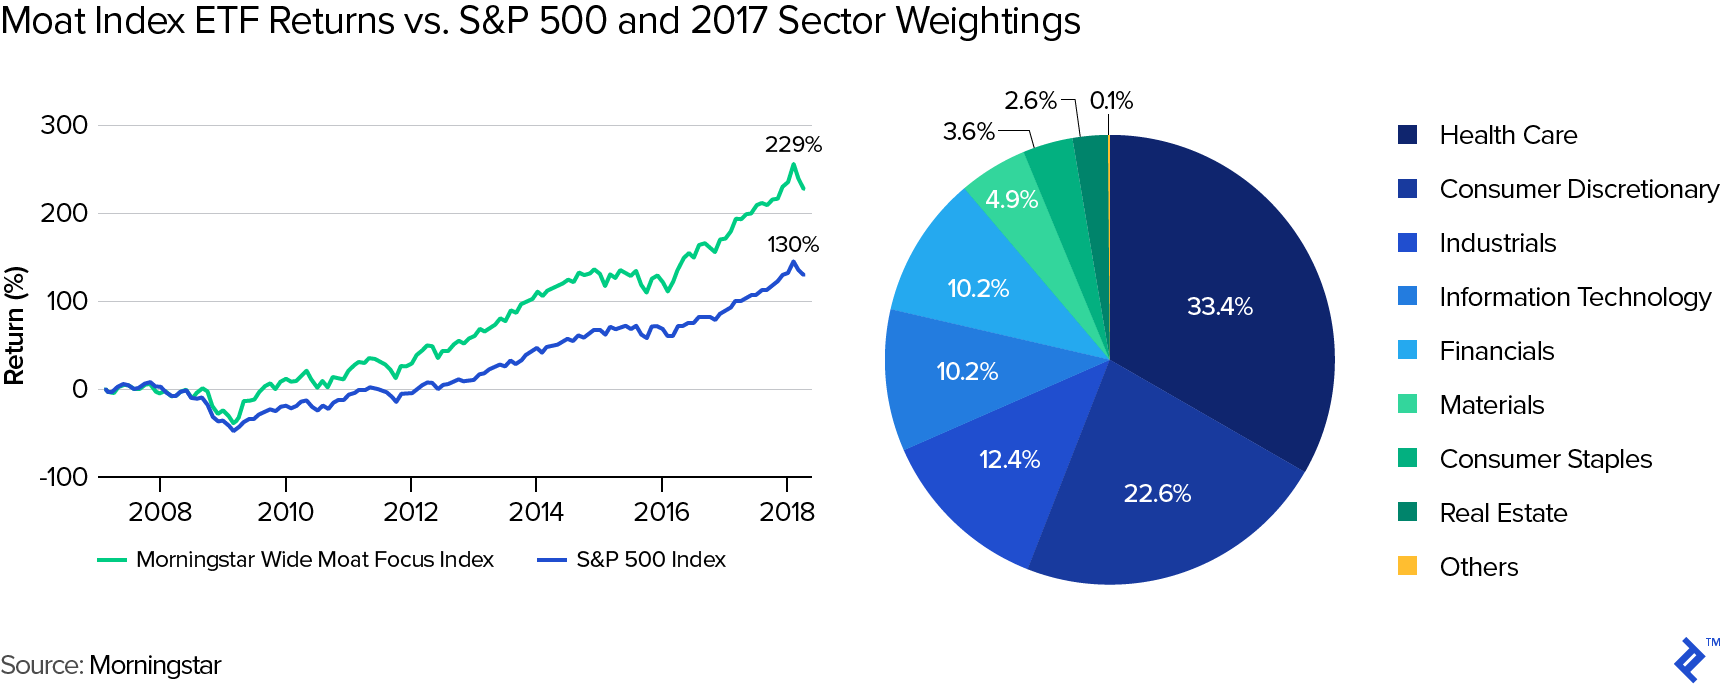 Graph titled Moat Index ETF Returns vs. S&P 500 and 2017 Sector Weightings